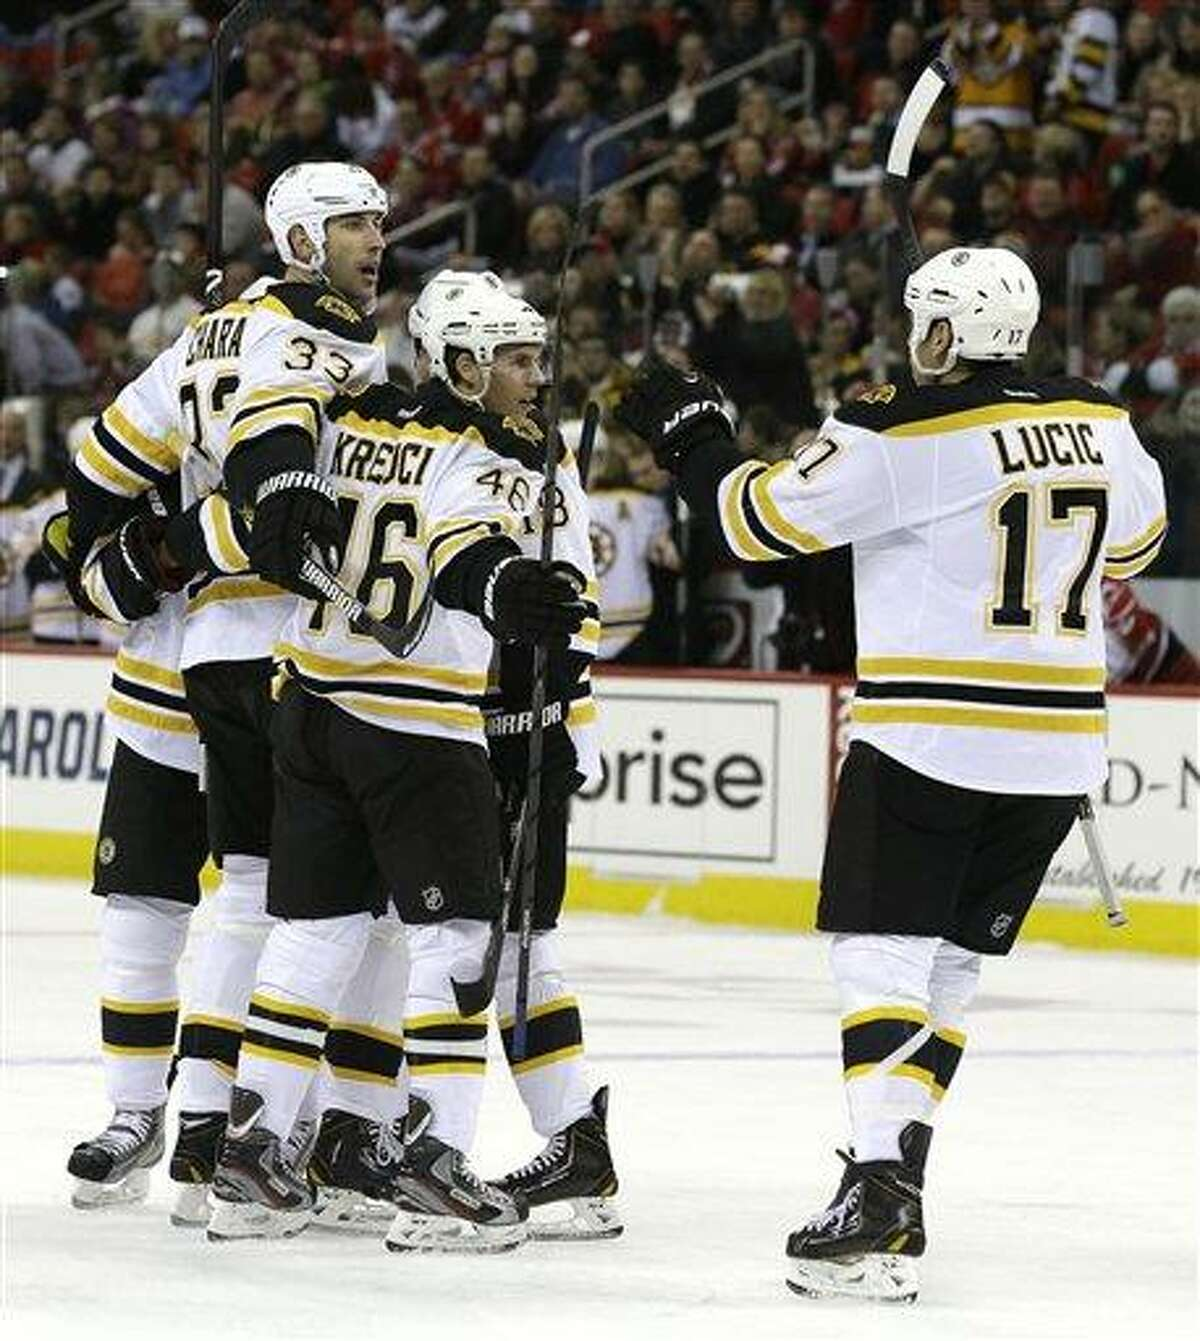 Boston Bruins' Zdeno Chara (33), of Slovakia, is congratulated by David Krejci (46), of the Czech Republic, and Milan Lucic (17) after Chara's goal against the Carolina Hurricanes during the first period of an NHL hockey game in Raleigh, N.C., Monday, Jan. 28, 2013. Boston won 5-3. (AP Photo/Gerry Broome)